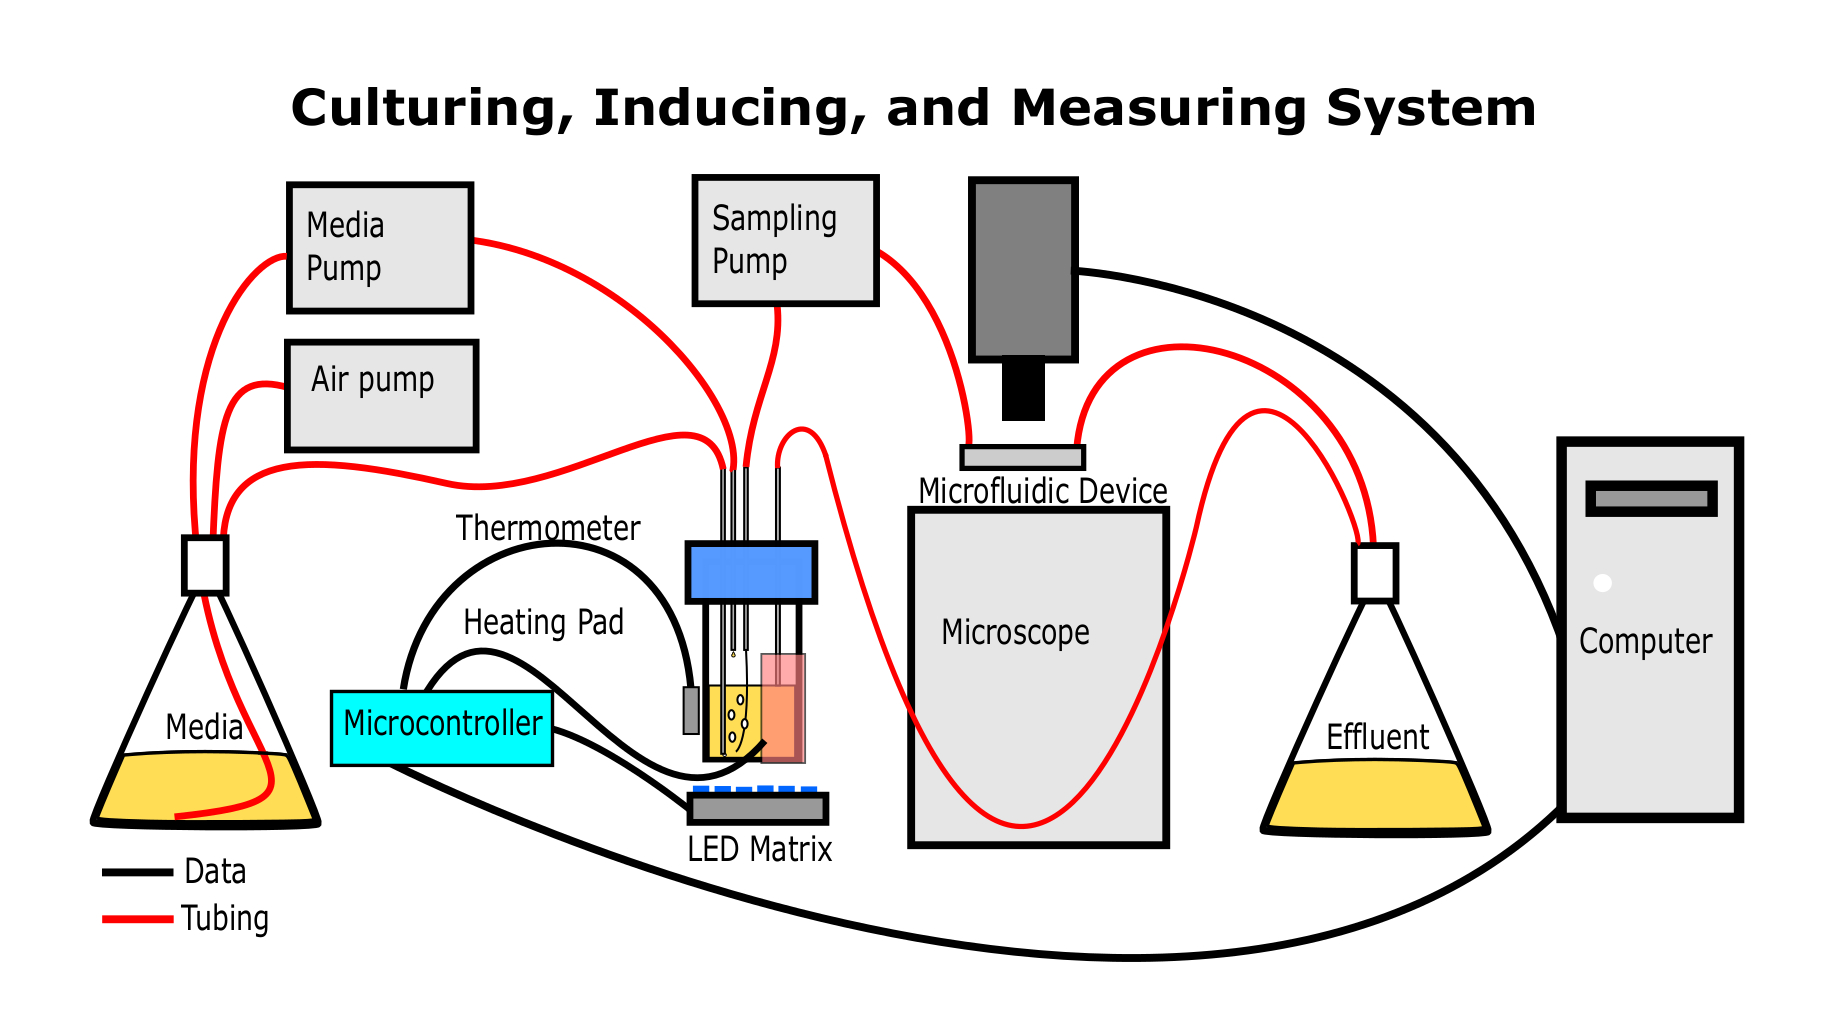 hight resolution of this simplified diagram shows how the apparatus should be assembled when it is used to culture illuminate and measure optical properties of the microbes